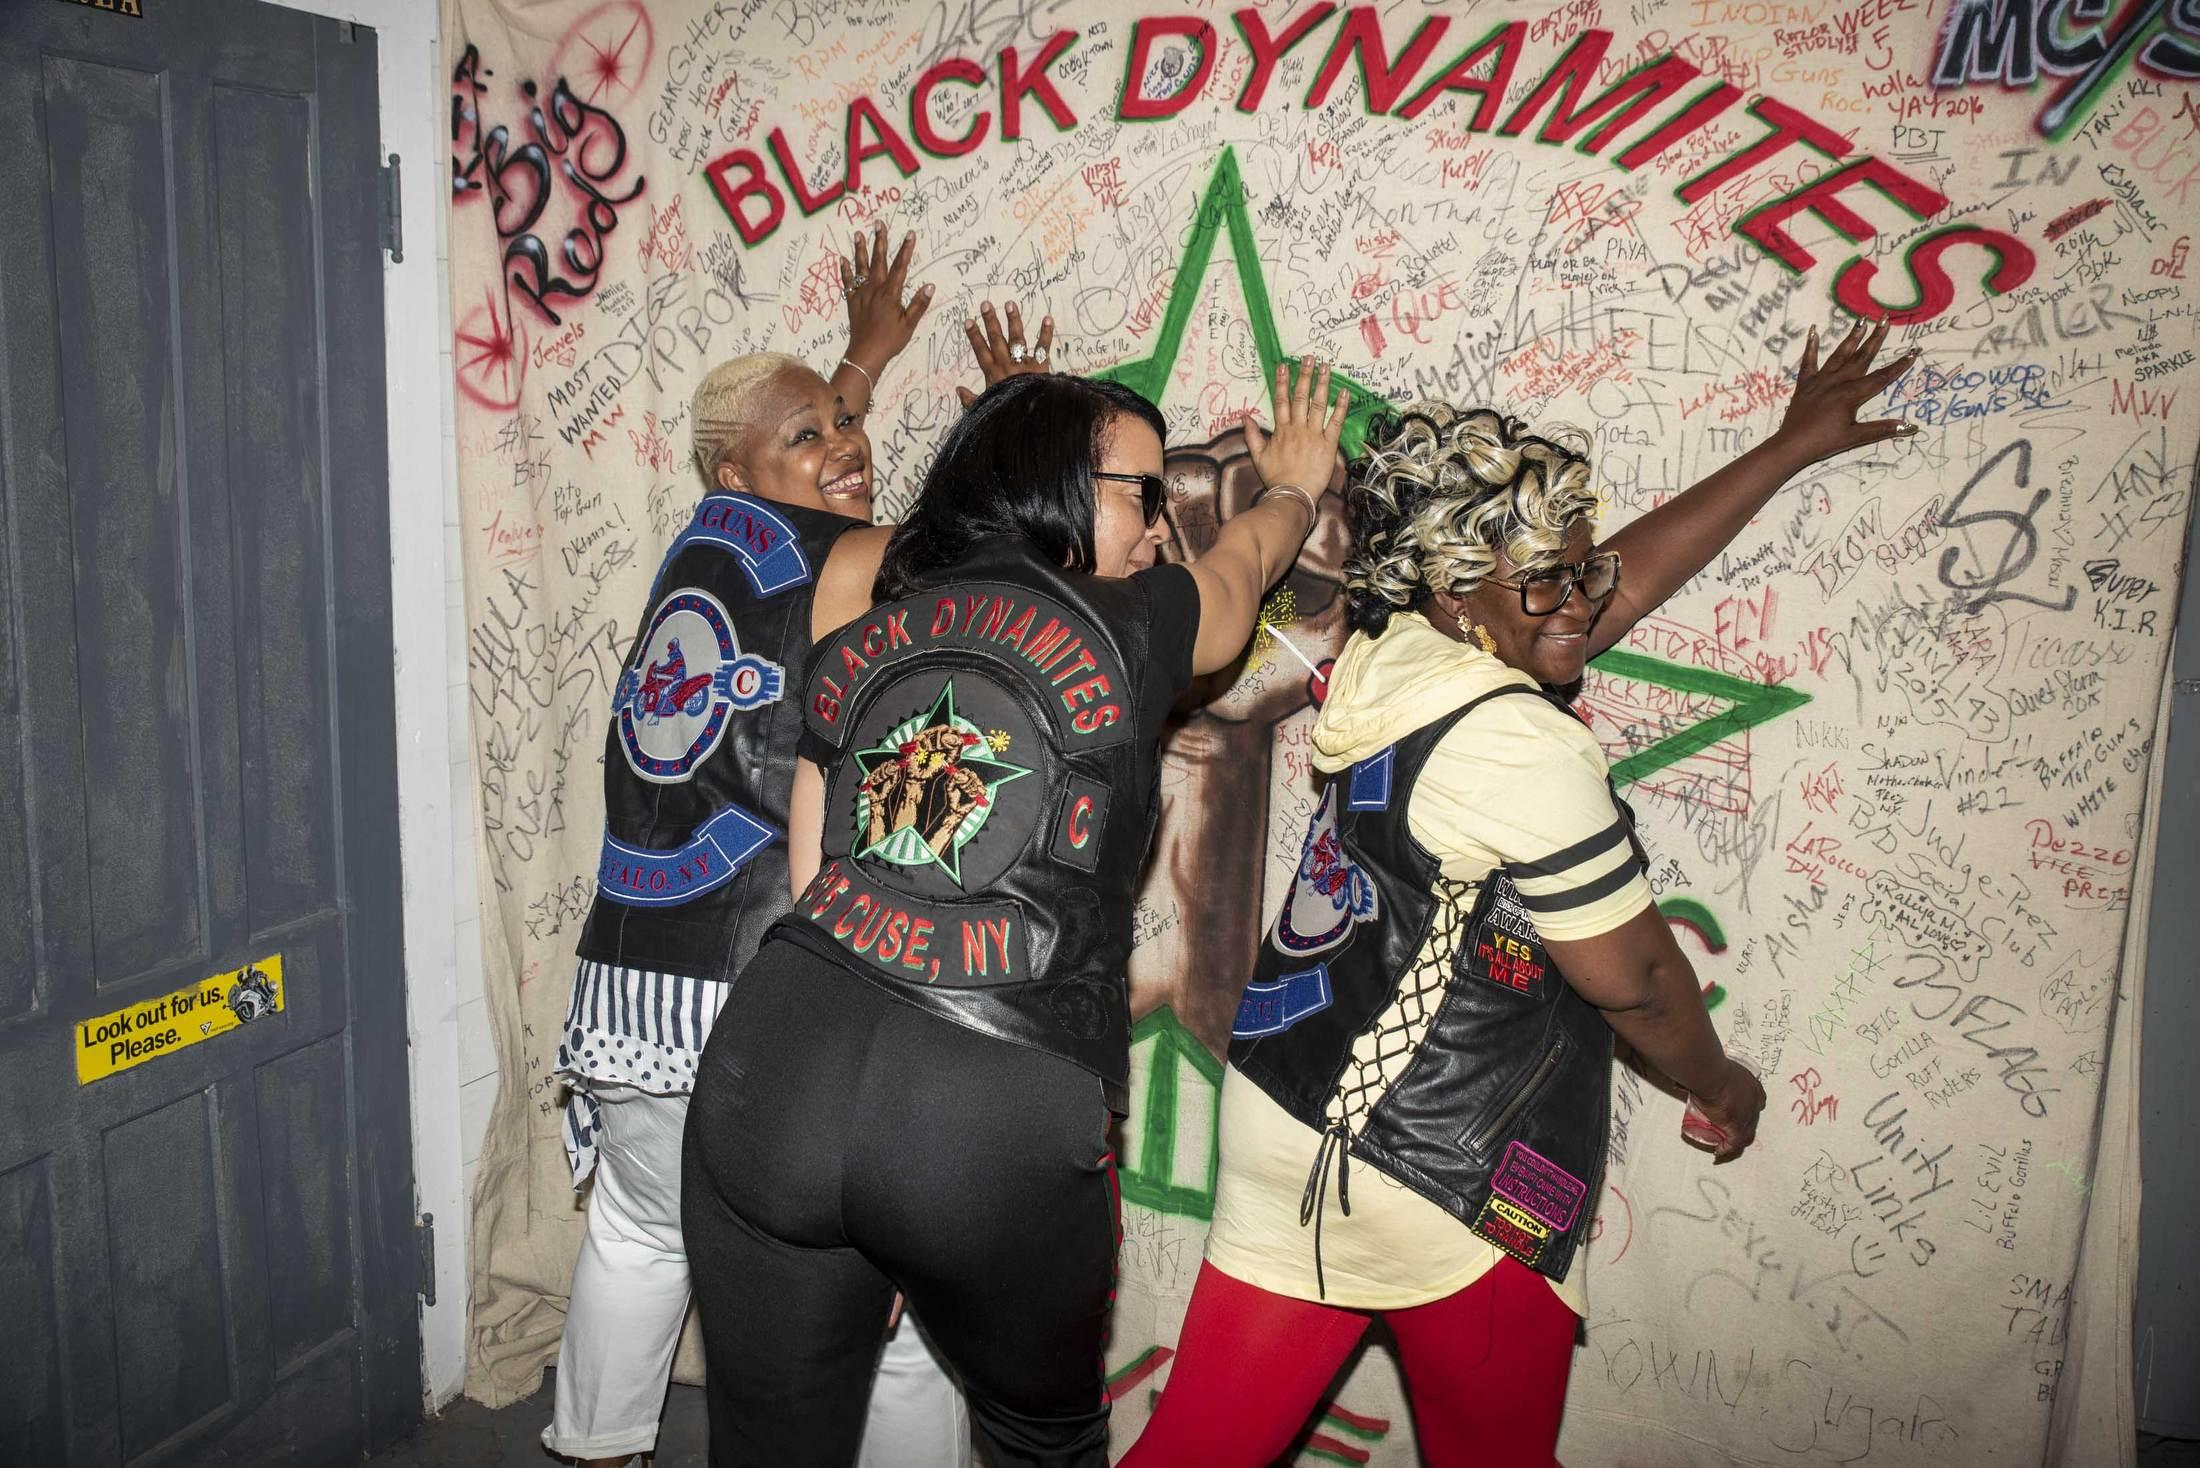 """Top Guns and Black Dynamites social club members Nice Nasty, Redbone, and Shorty Doowop gather for a party, posing in front of a tapestry signed by all who are invited to the Black Dynamites' hangout """"The Bottom."""""""